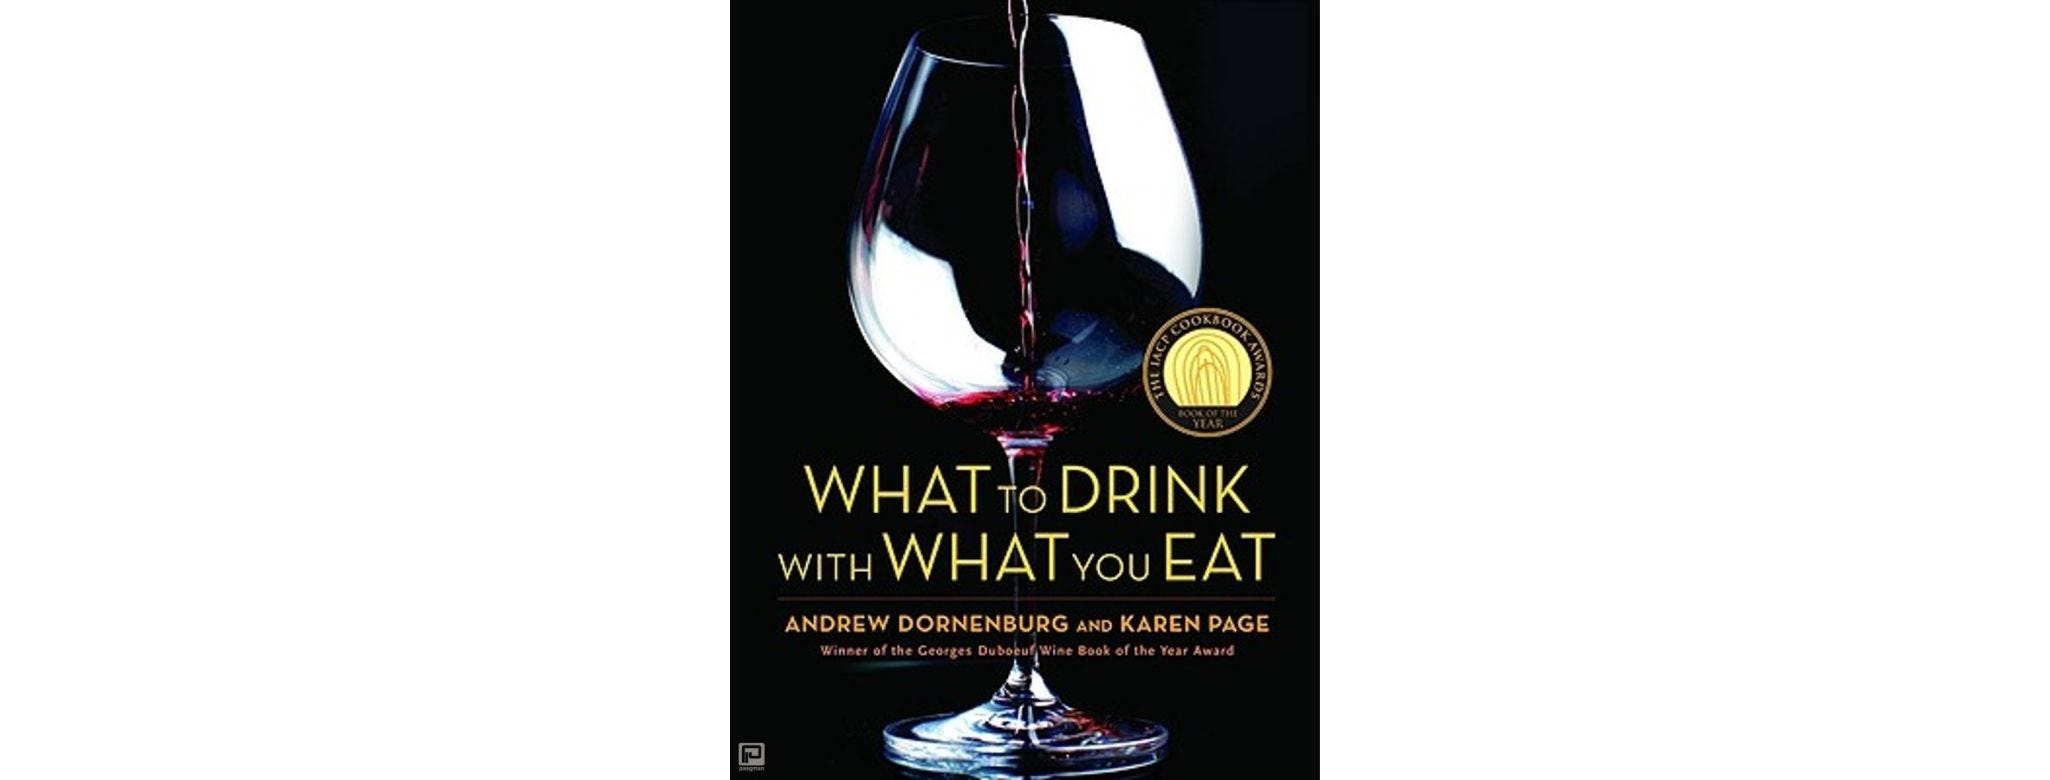 The cover of 'What to Drink with What You Eat.'